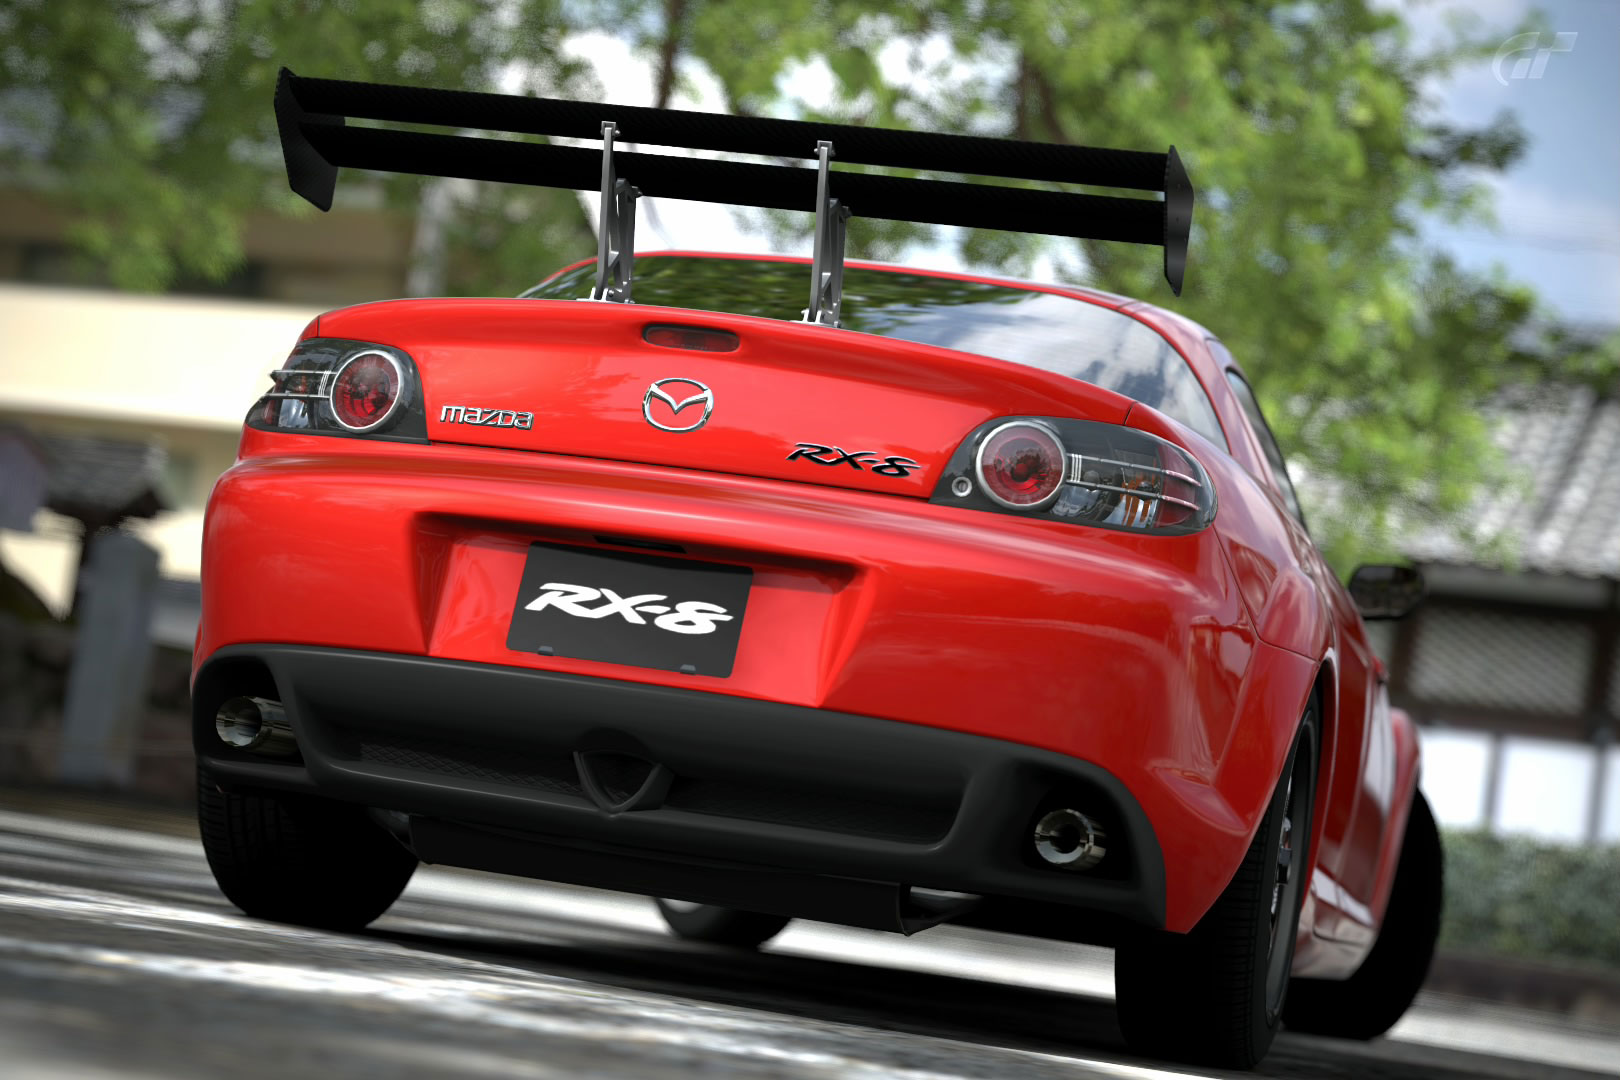 Rx8 Iphone Wallpaper Mazda Rx8 Duvarkağıdı And Arka Plan 1620x1080 Id 502052